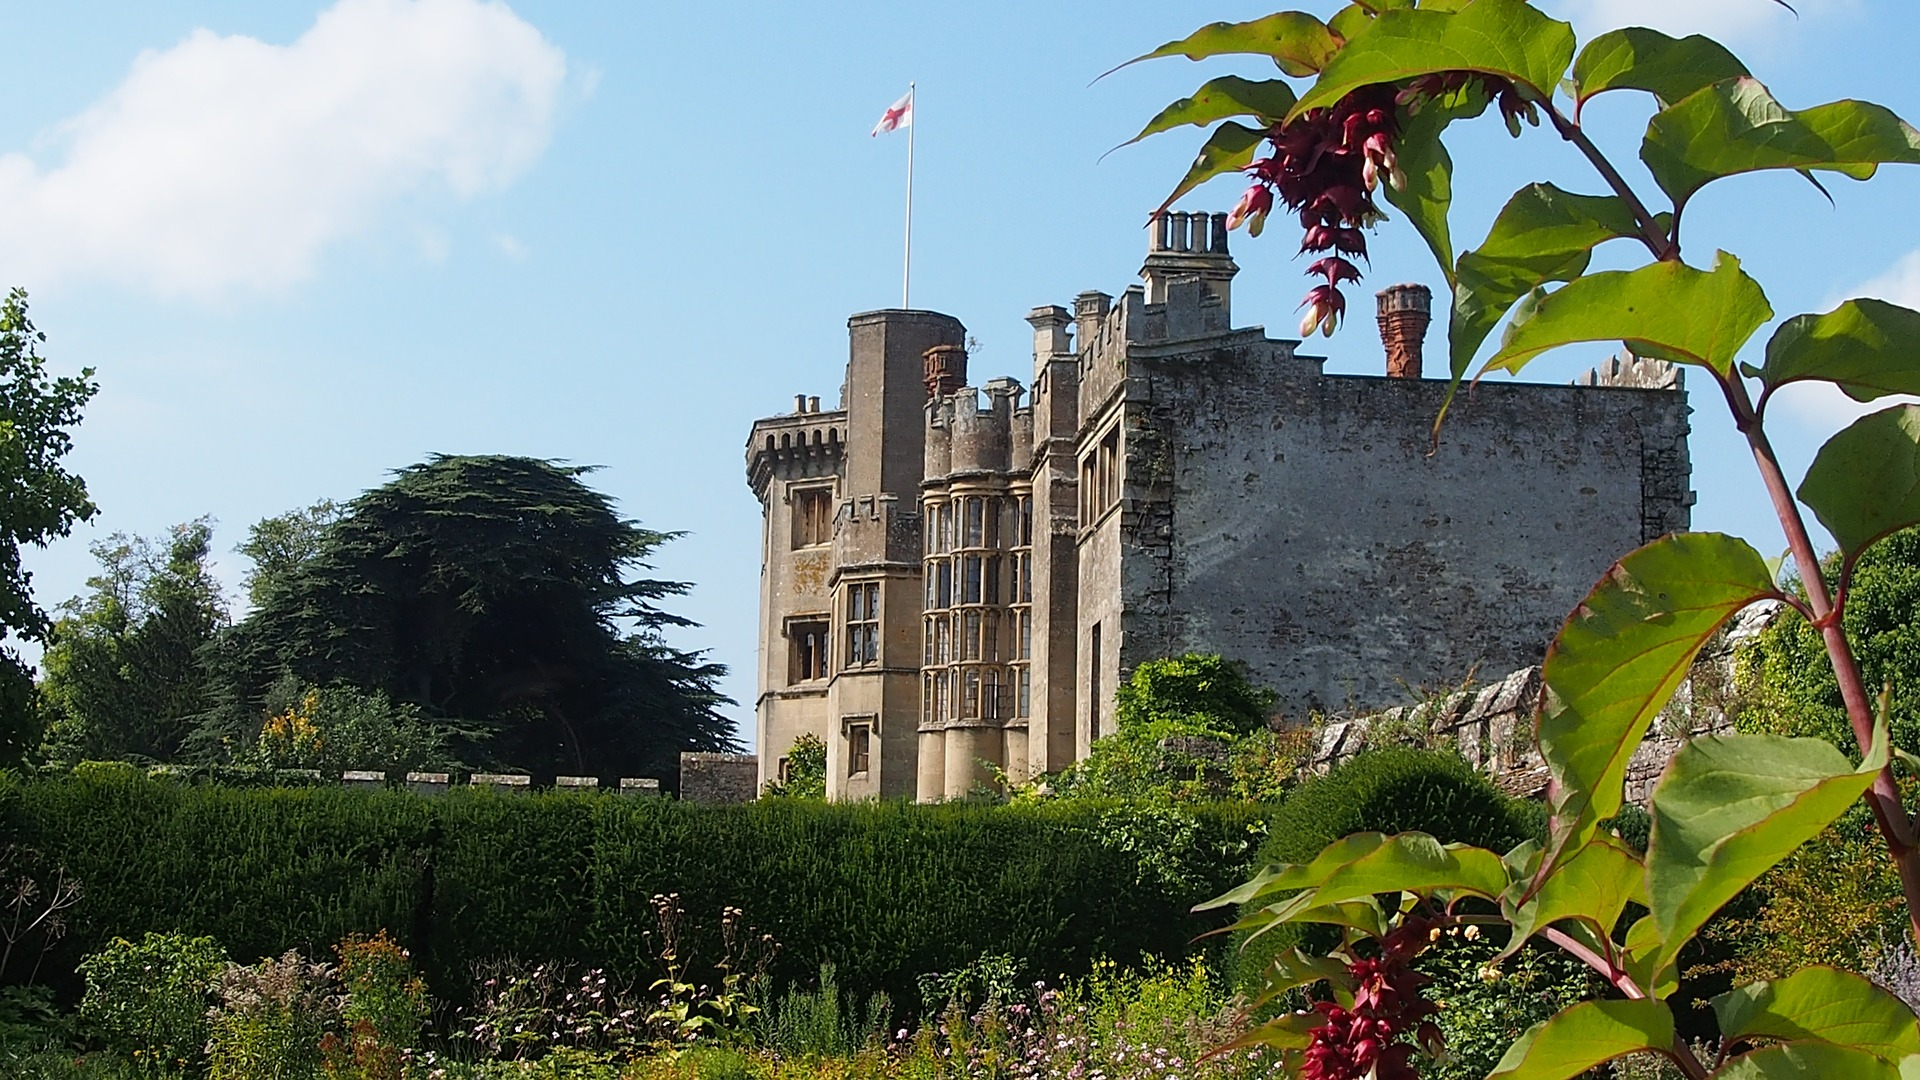 thornbury-castle.jpg?1543334086